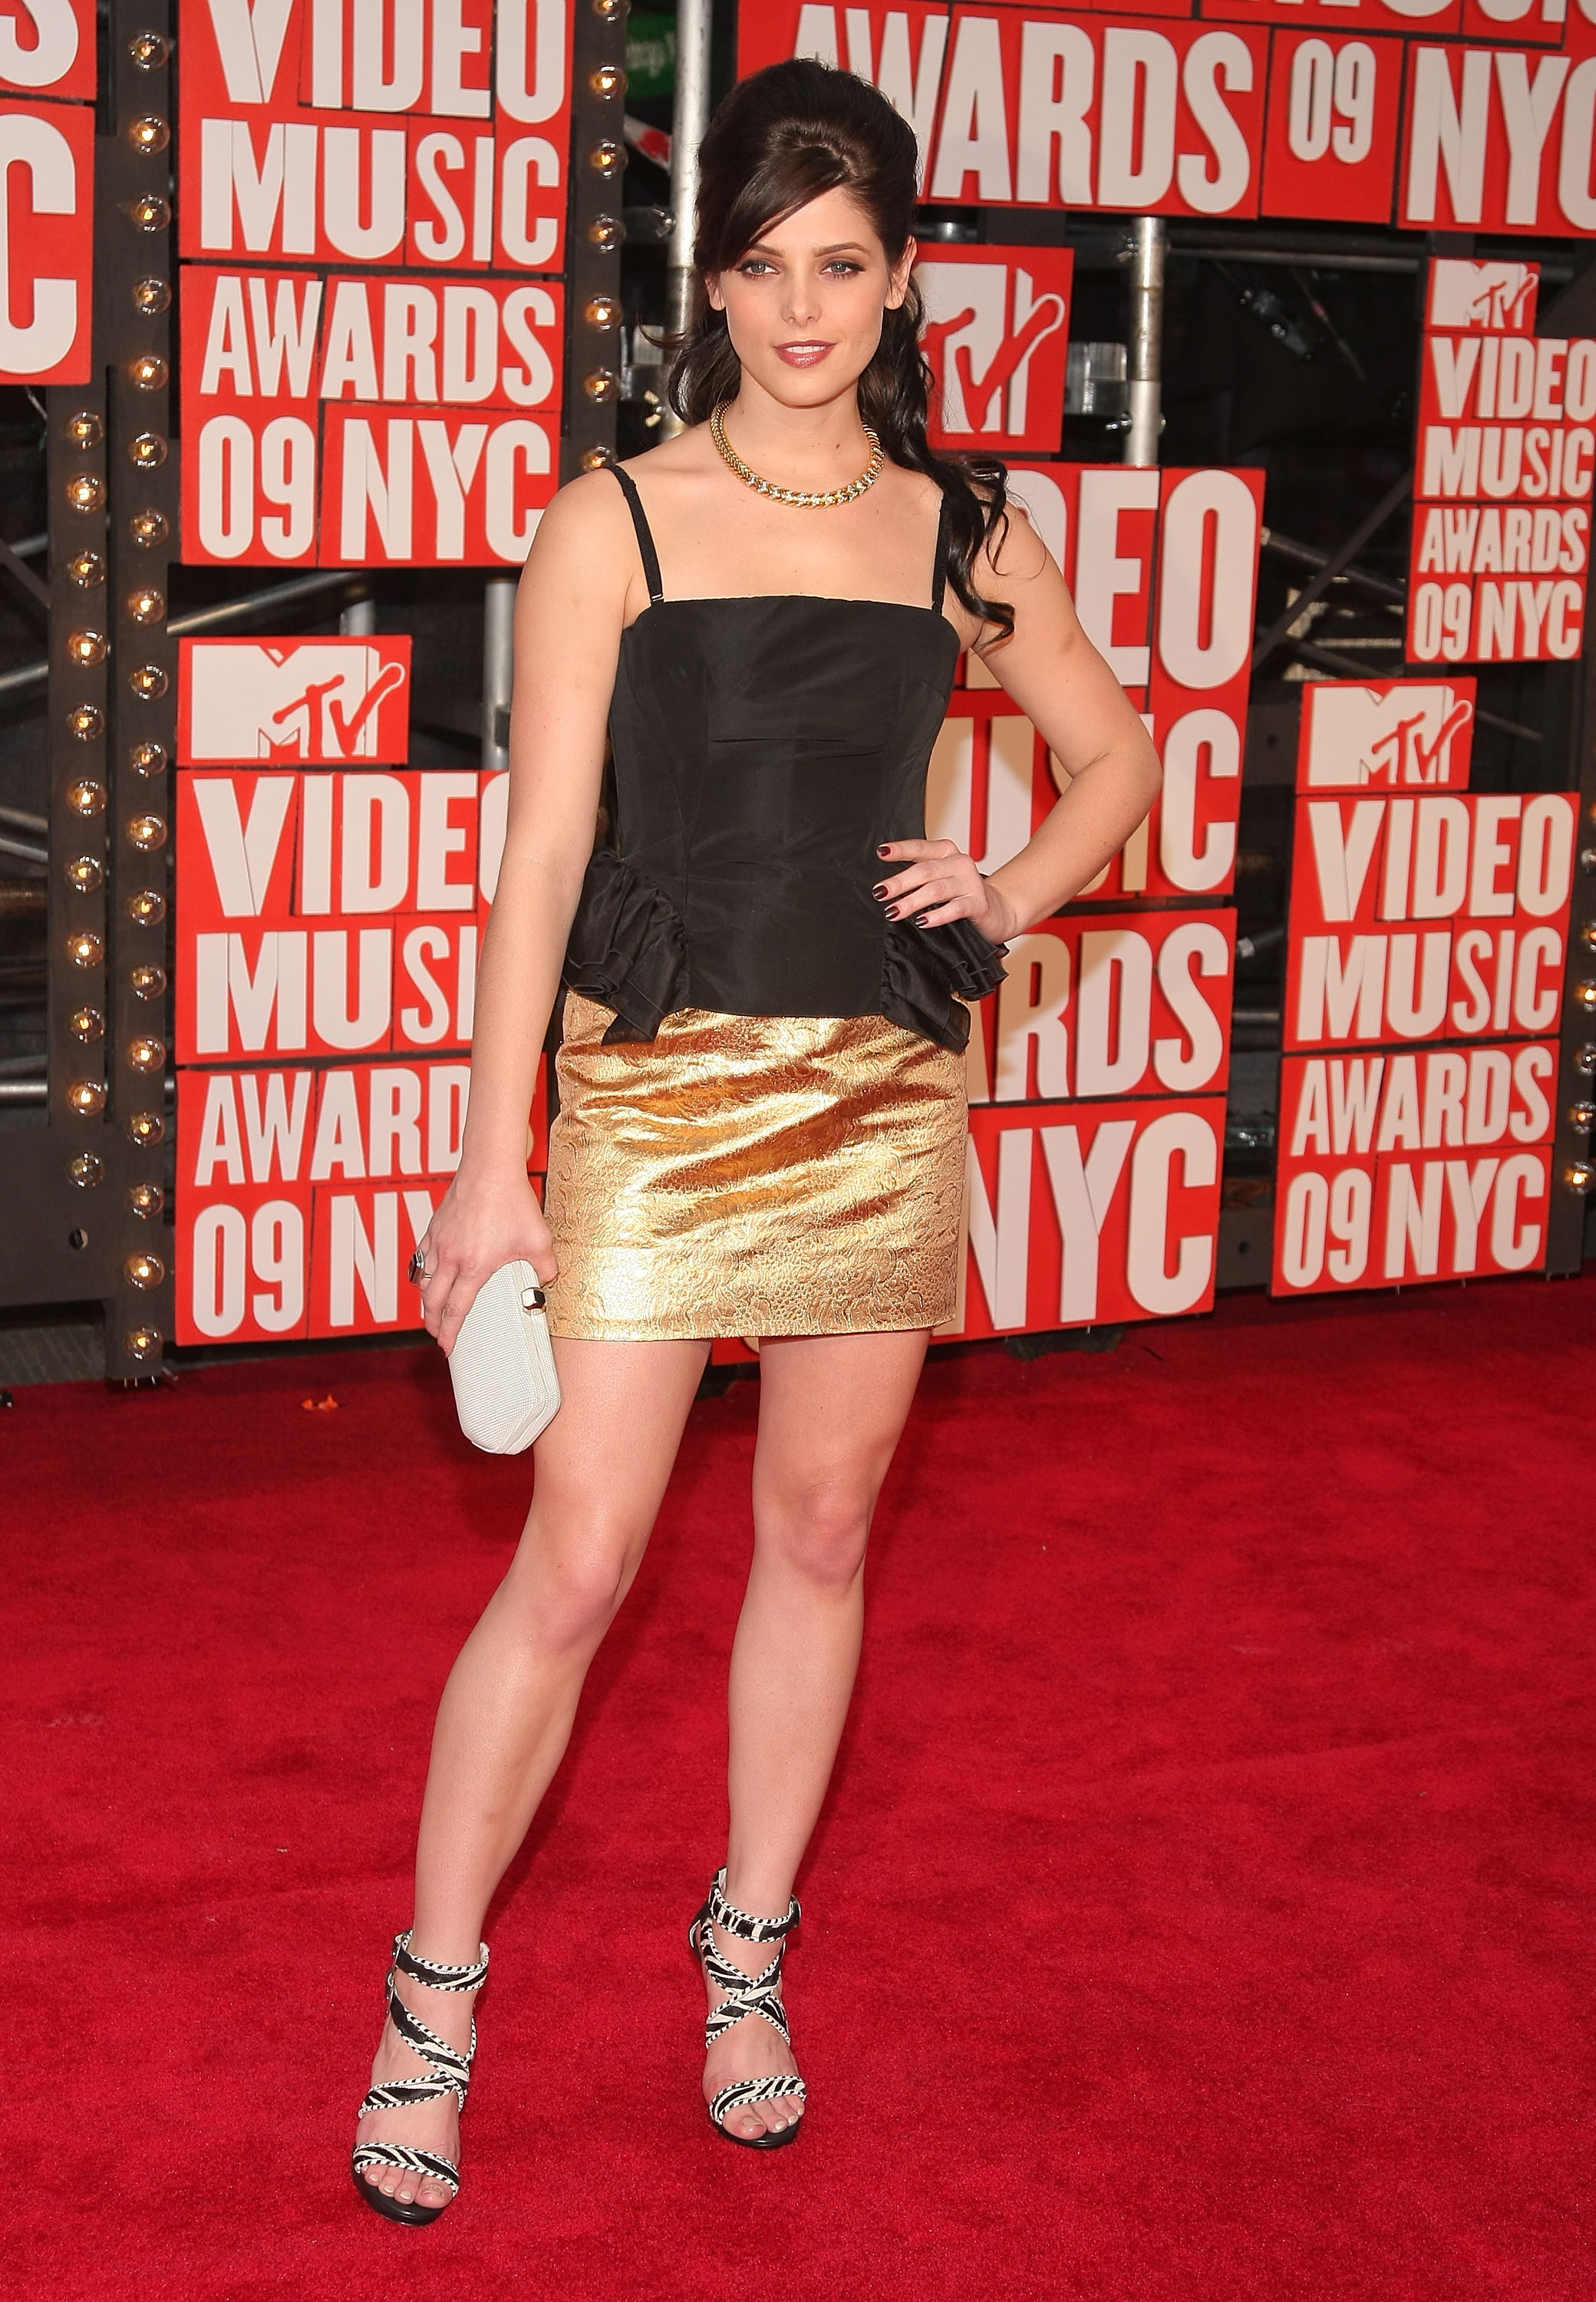 Photos of Ashley Green at 2009 MTV VMAs | POPSUGAR Celebrity Joey King Wish I Was Here